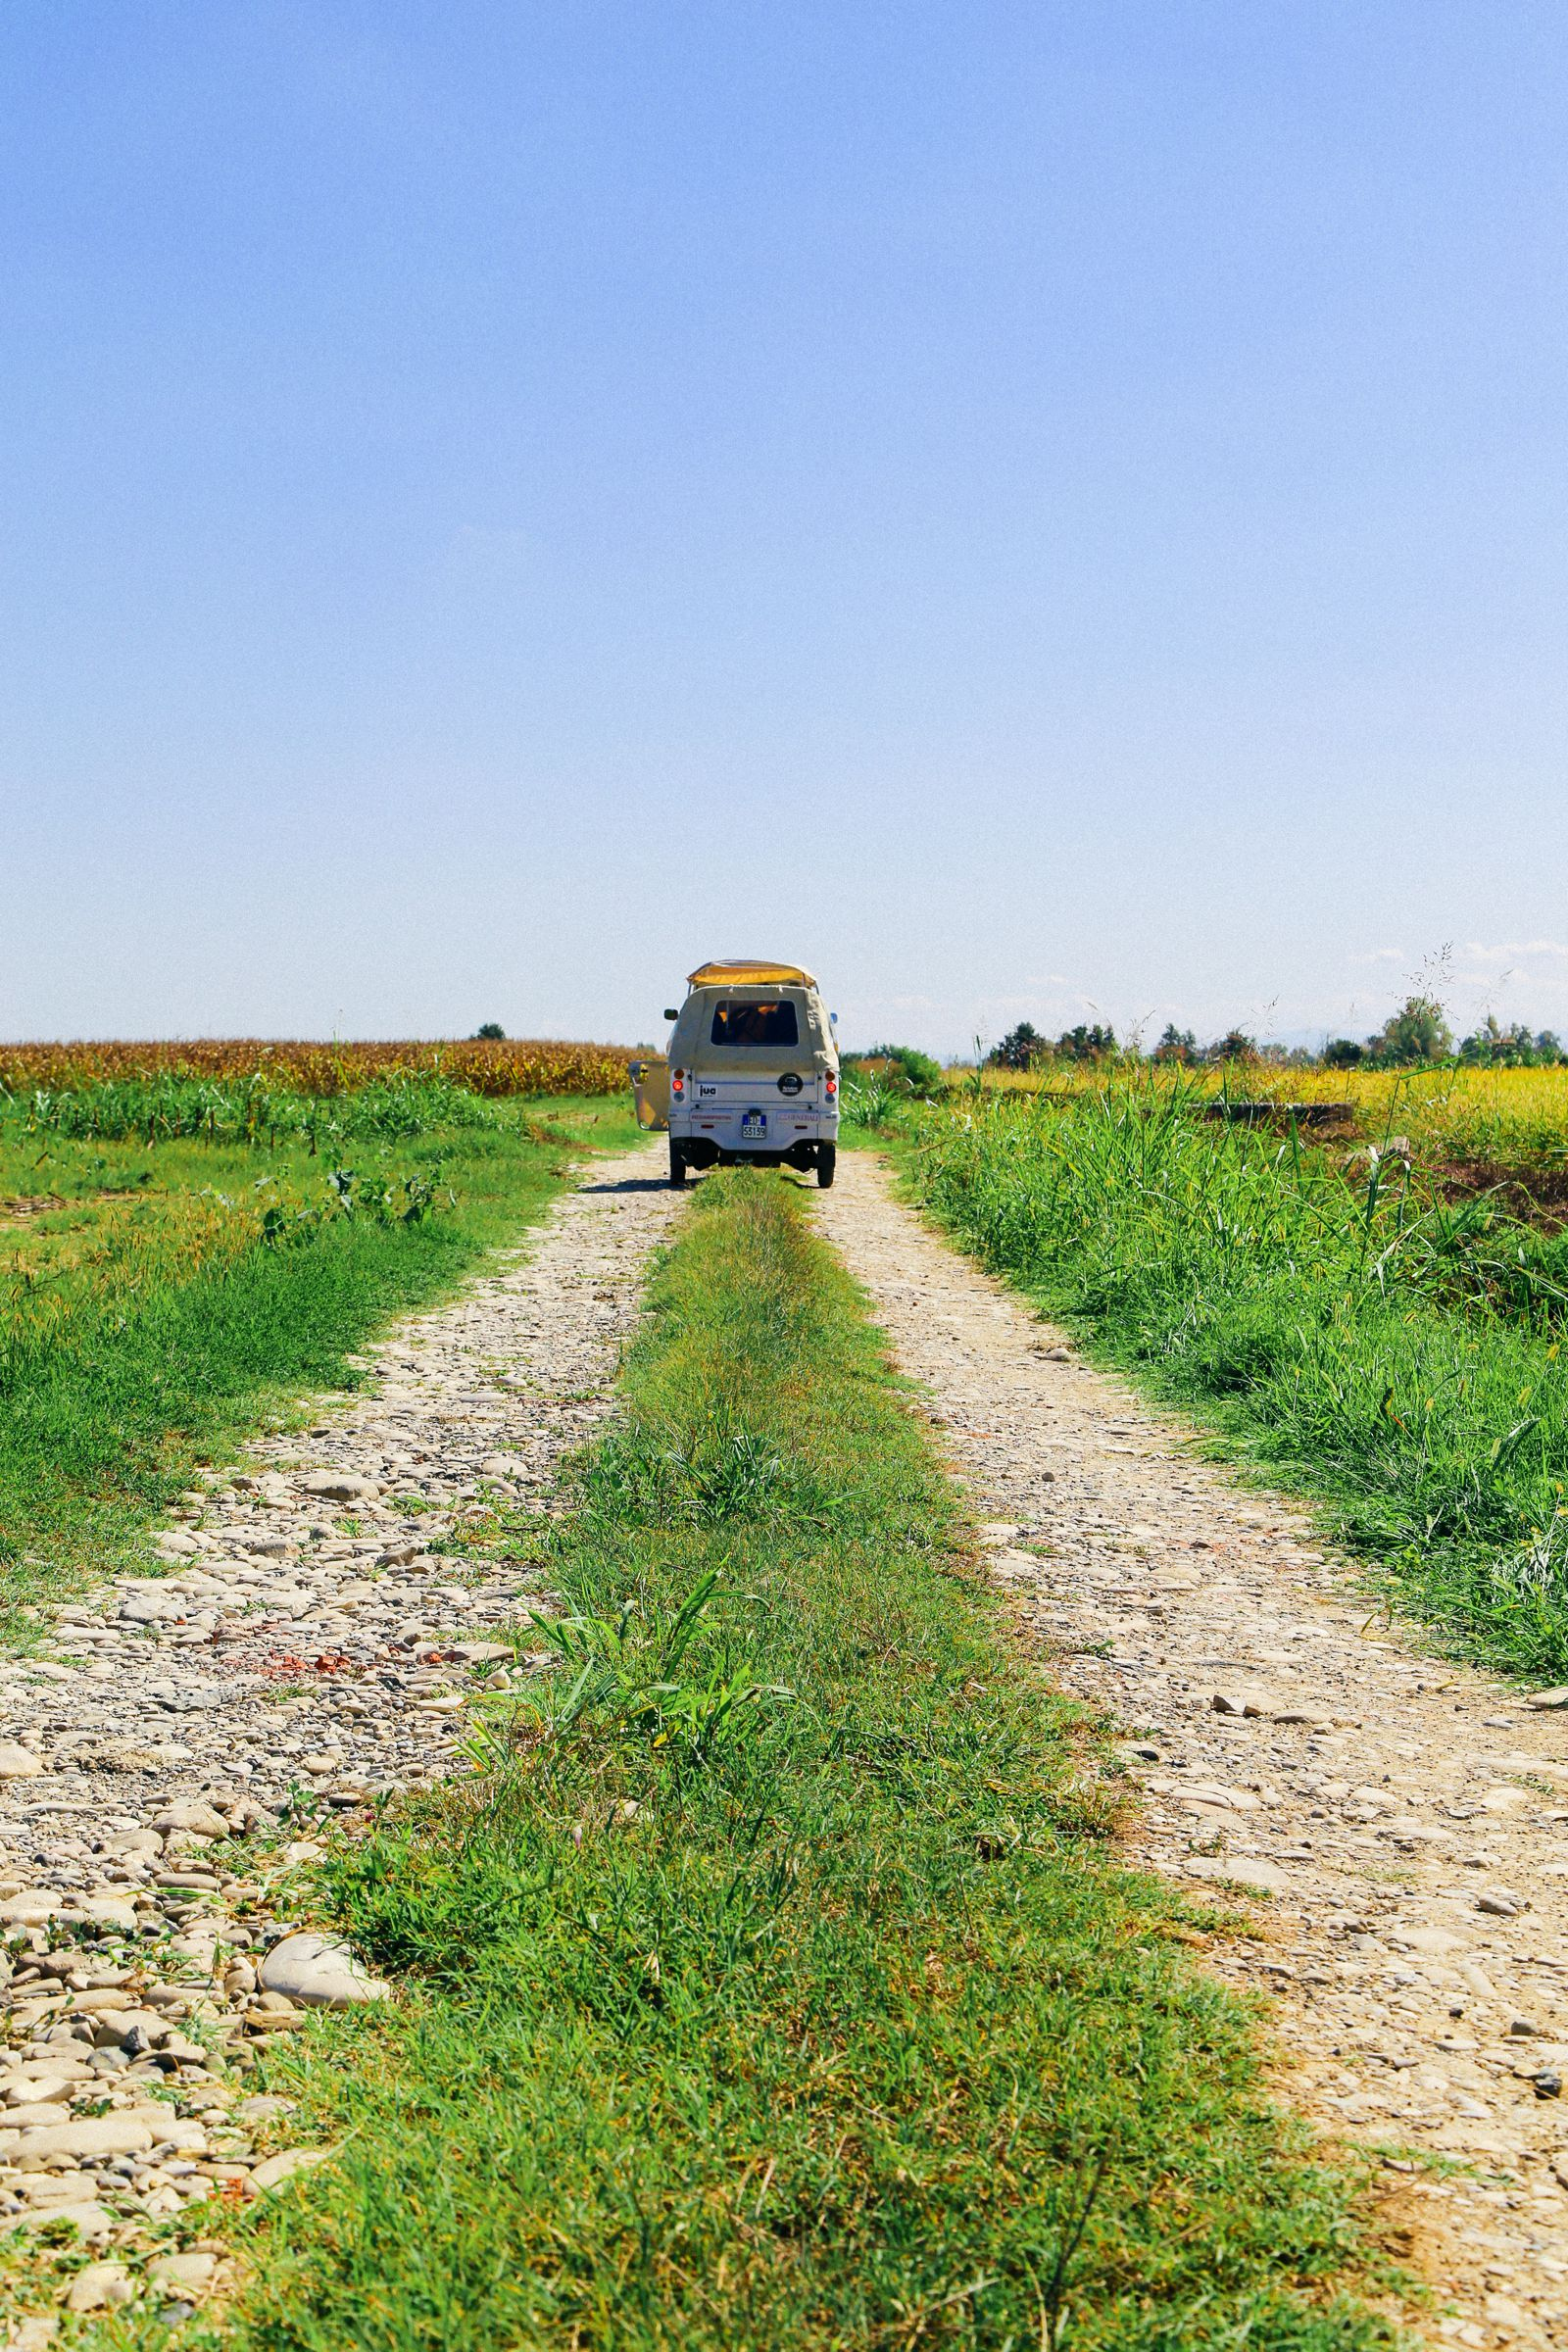 Photo Diary: Corn Fields And Open Roads... In Italy (2)